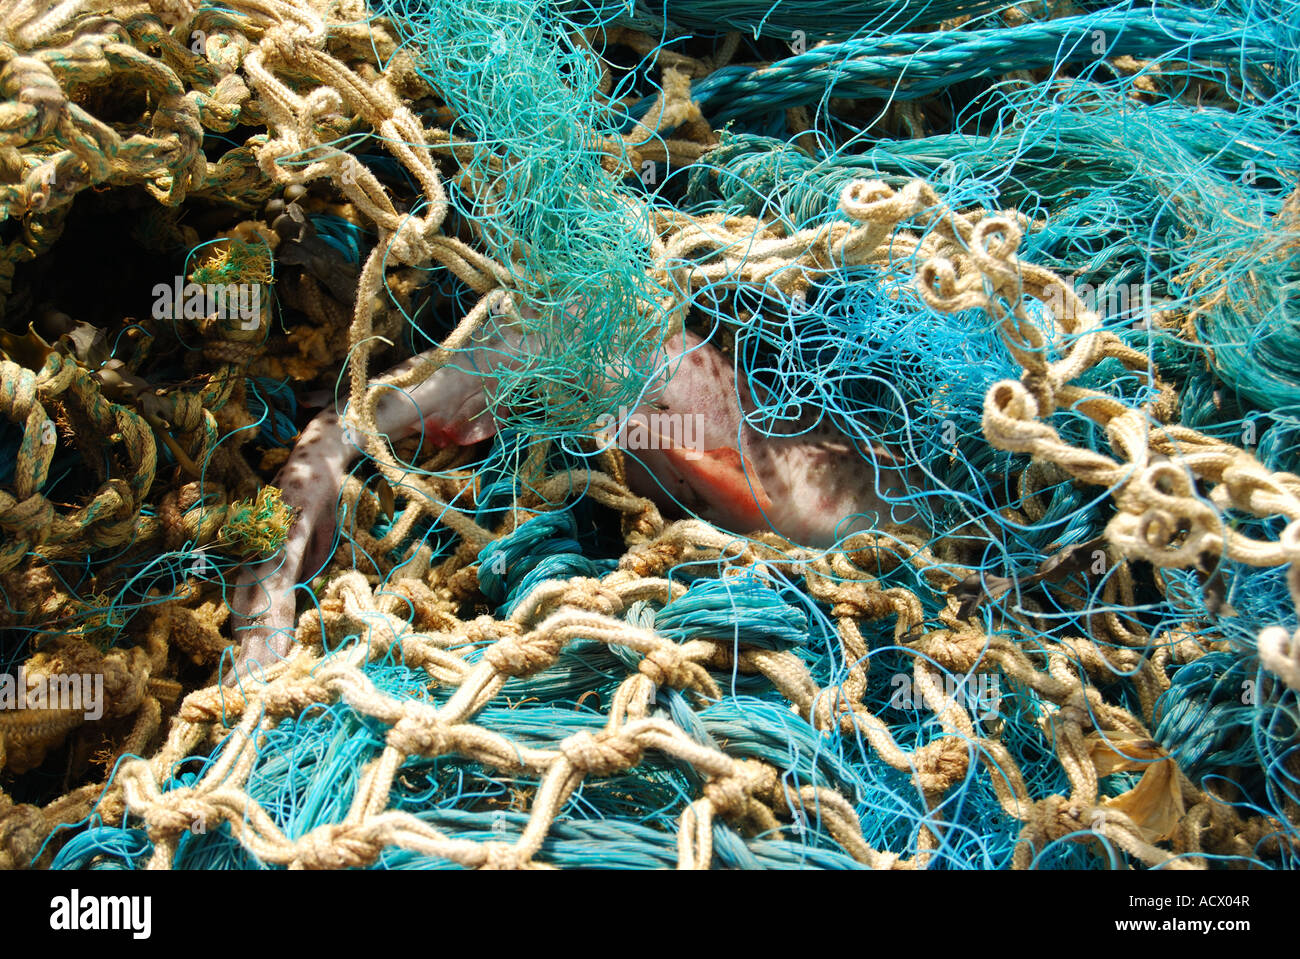 fish caught in washed up plastic fishing net 2520 - Stock Image